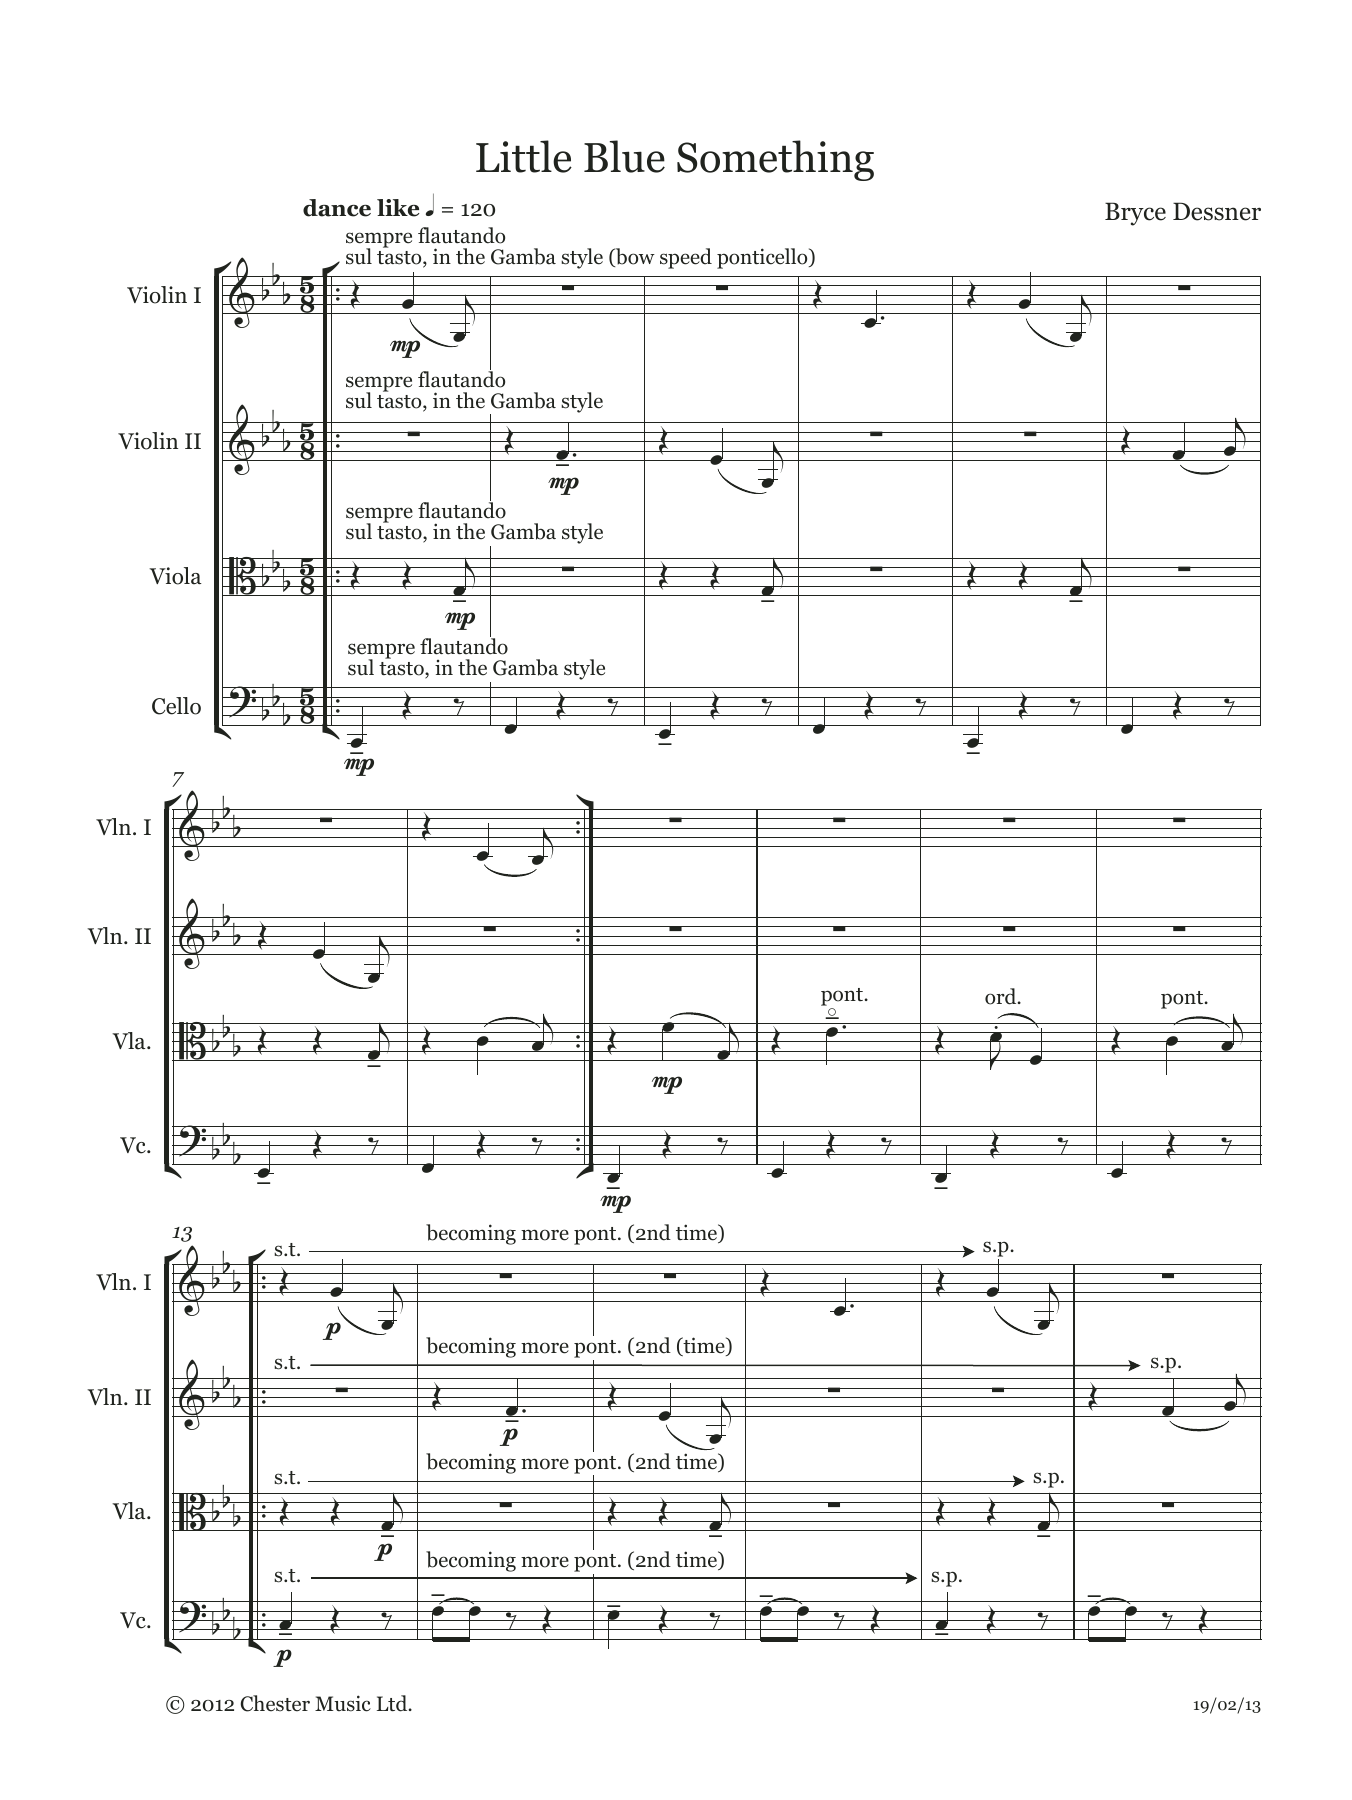 Bryce Dessner - Little Blue Something (String quartet score & parts)